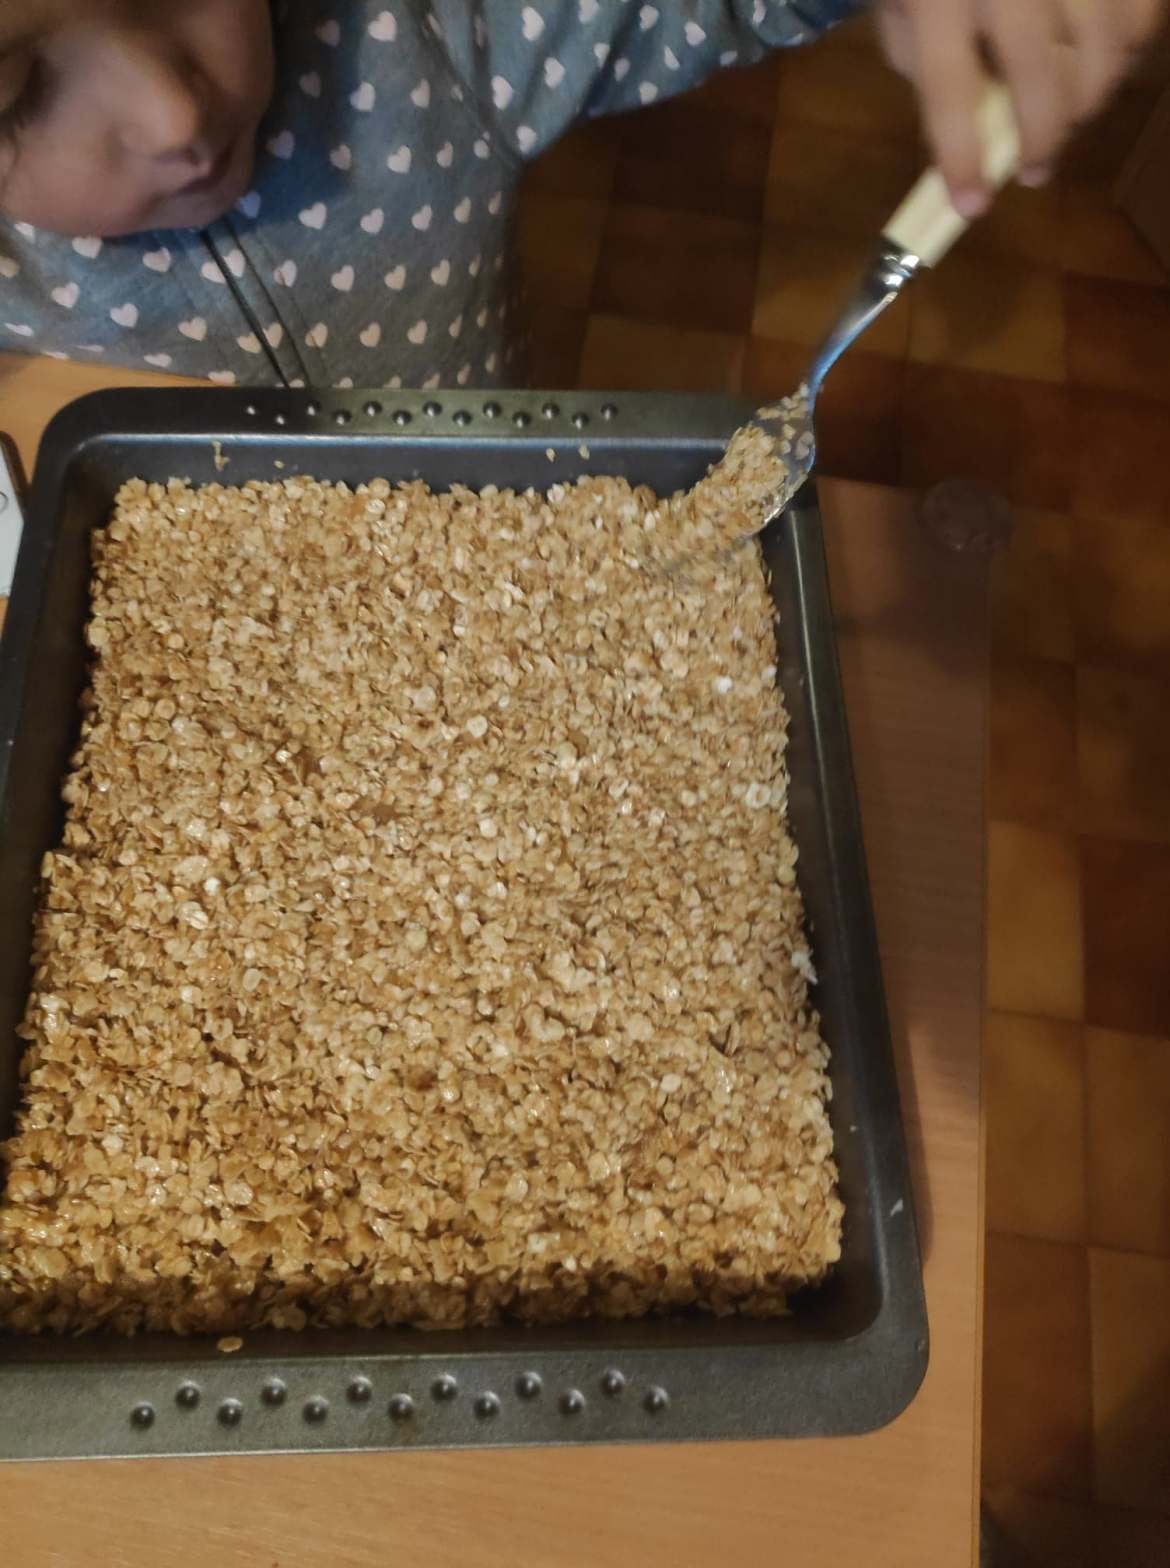 Tray of flapjacks getting flattened with a fork by a child